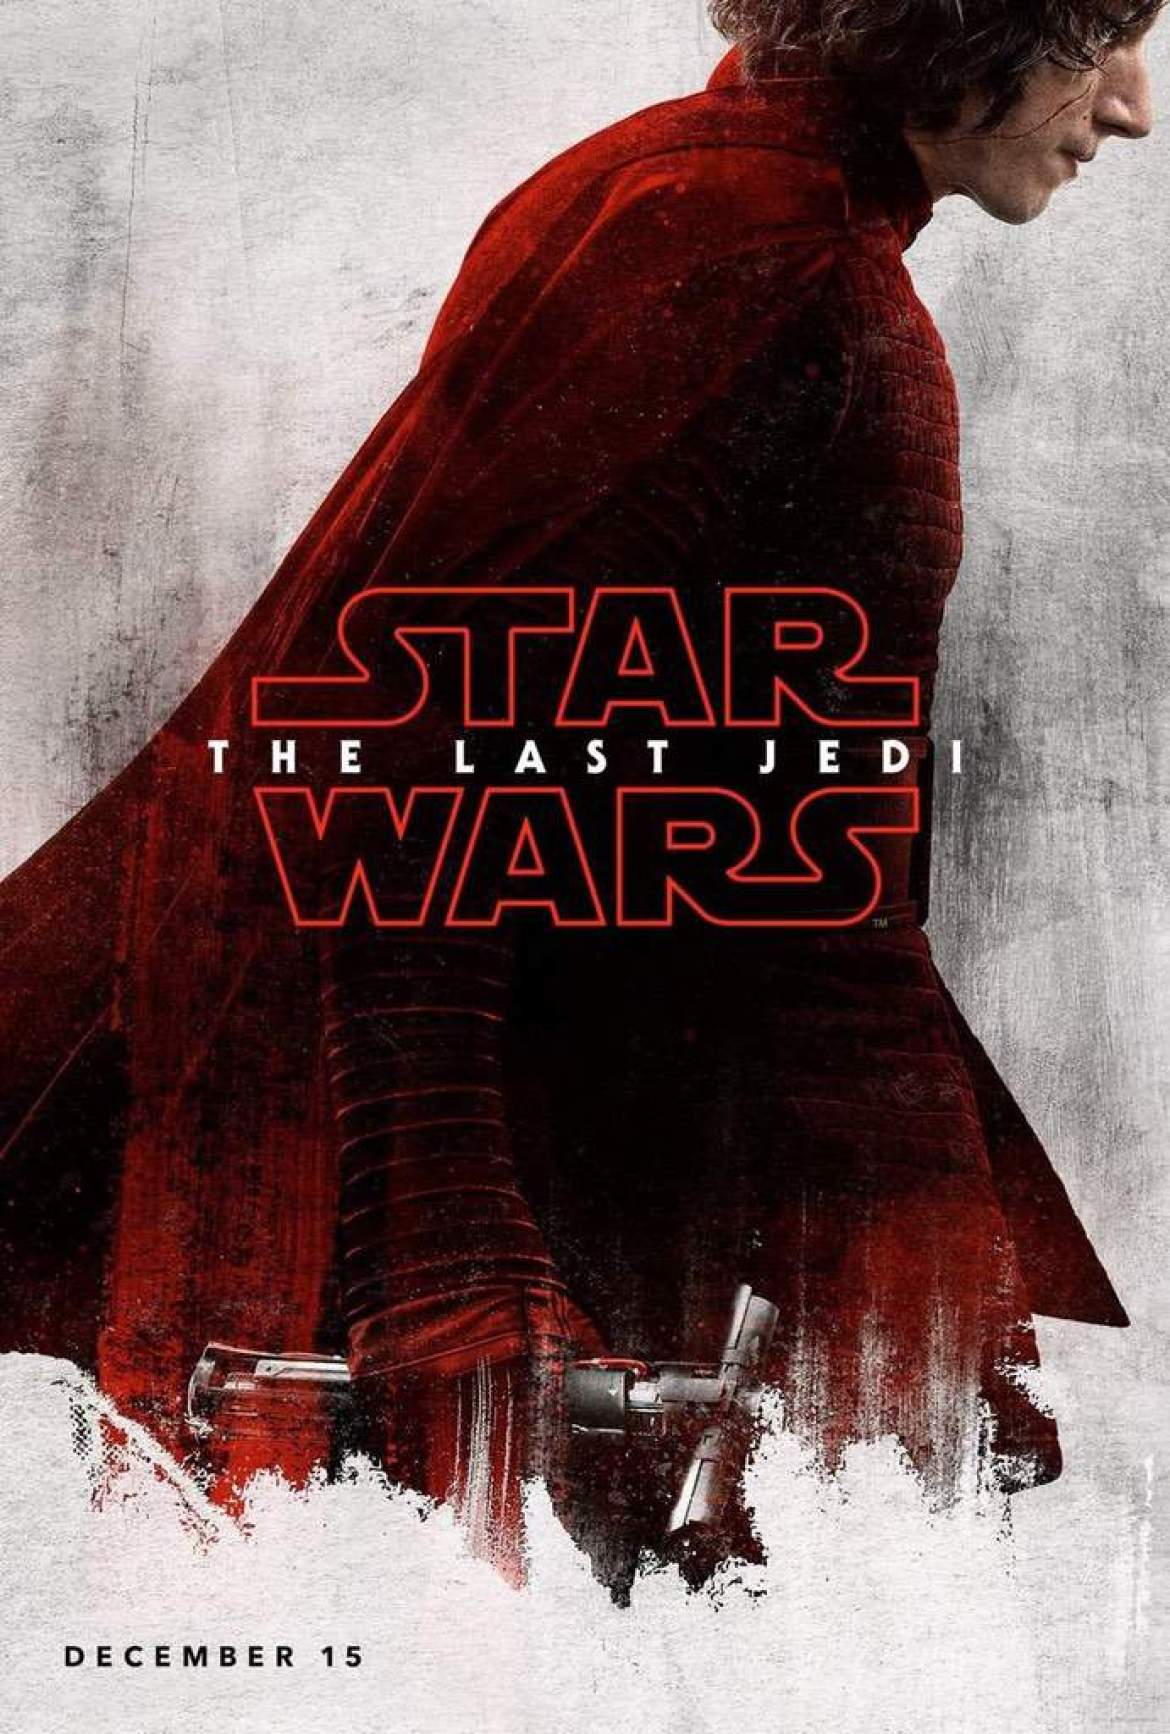 IMG 9261 - Six Star Wars: The Last Jedi character posters